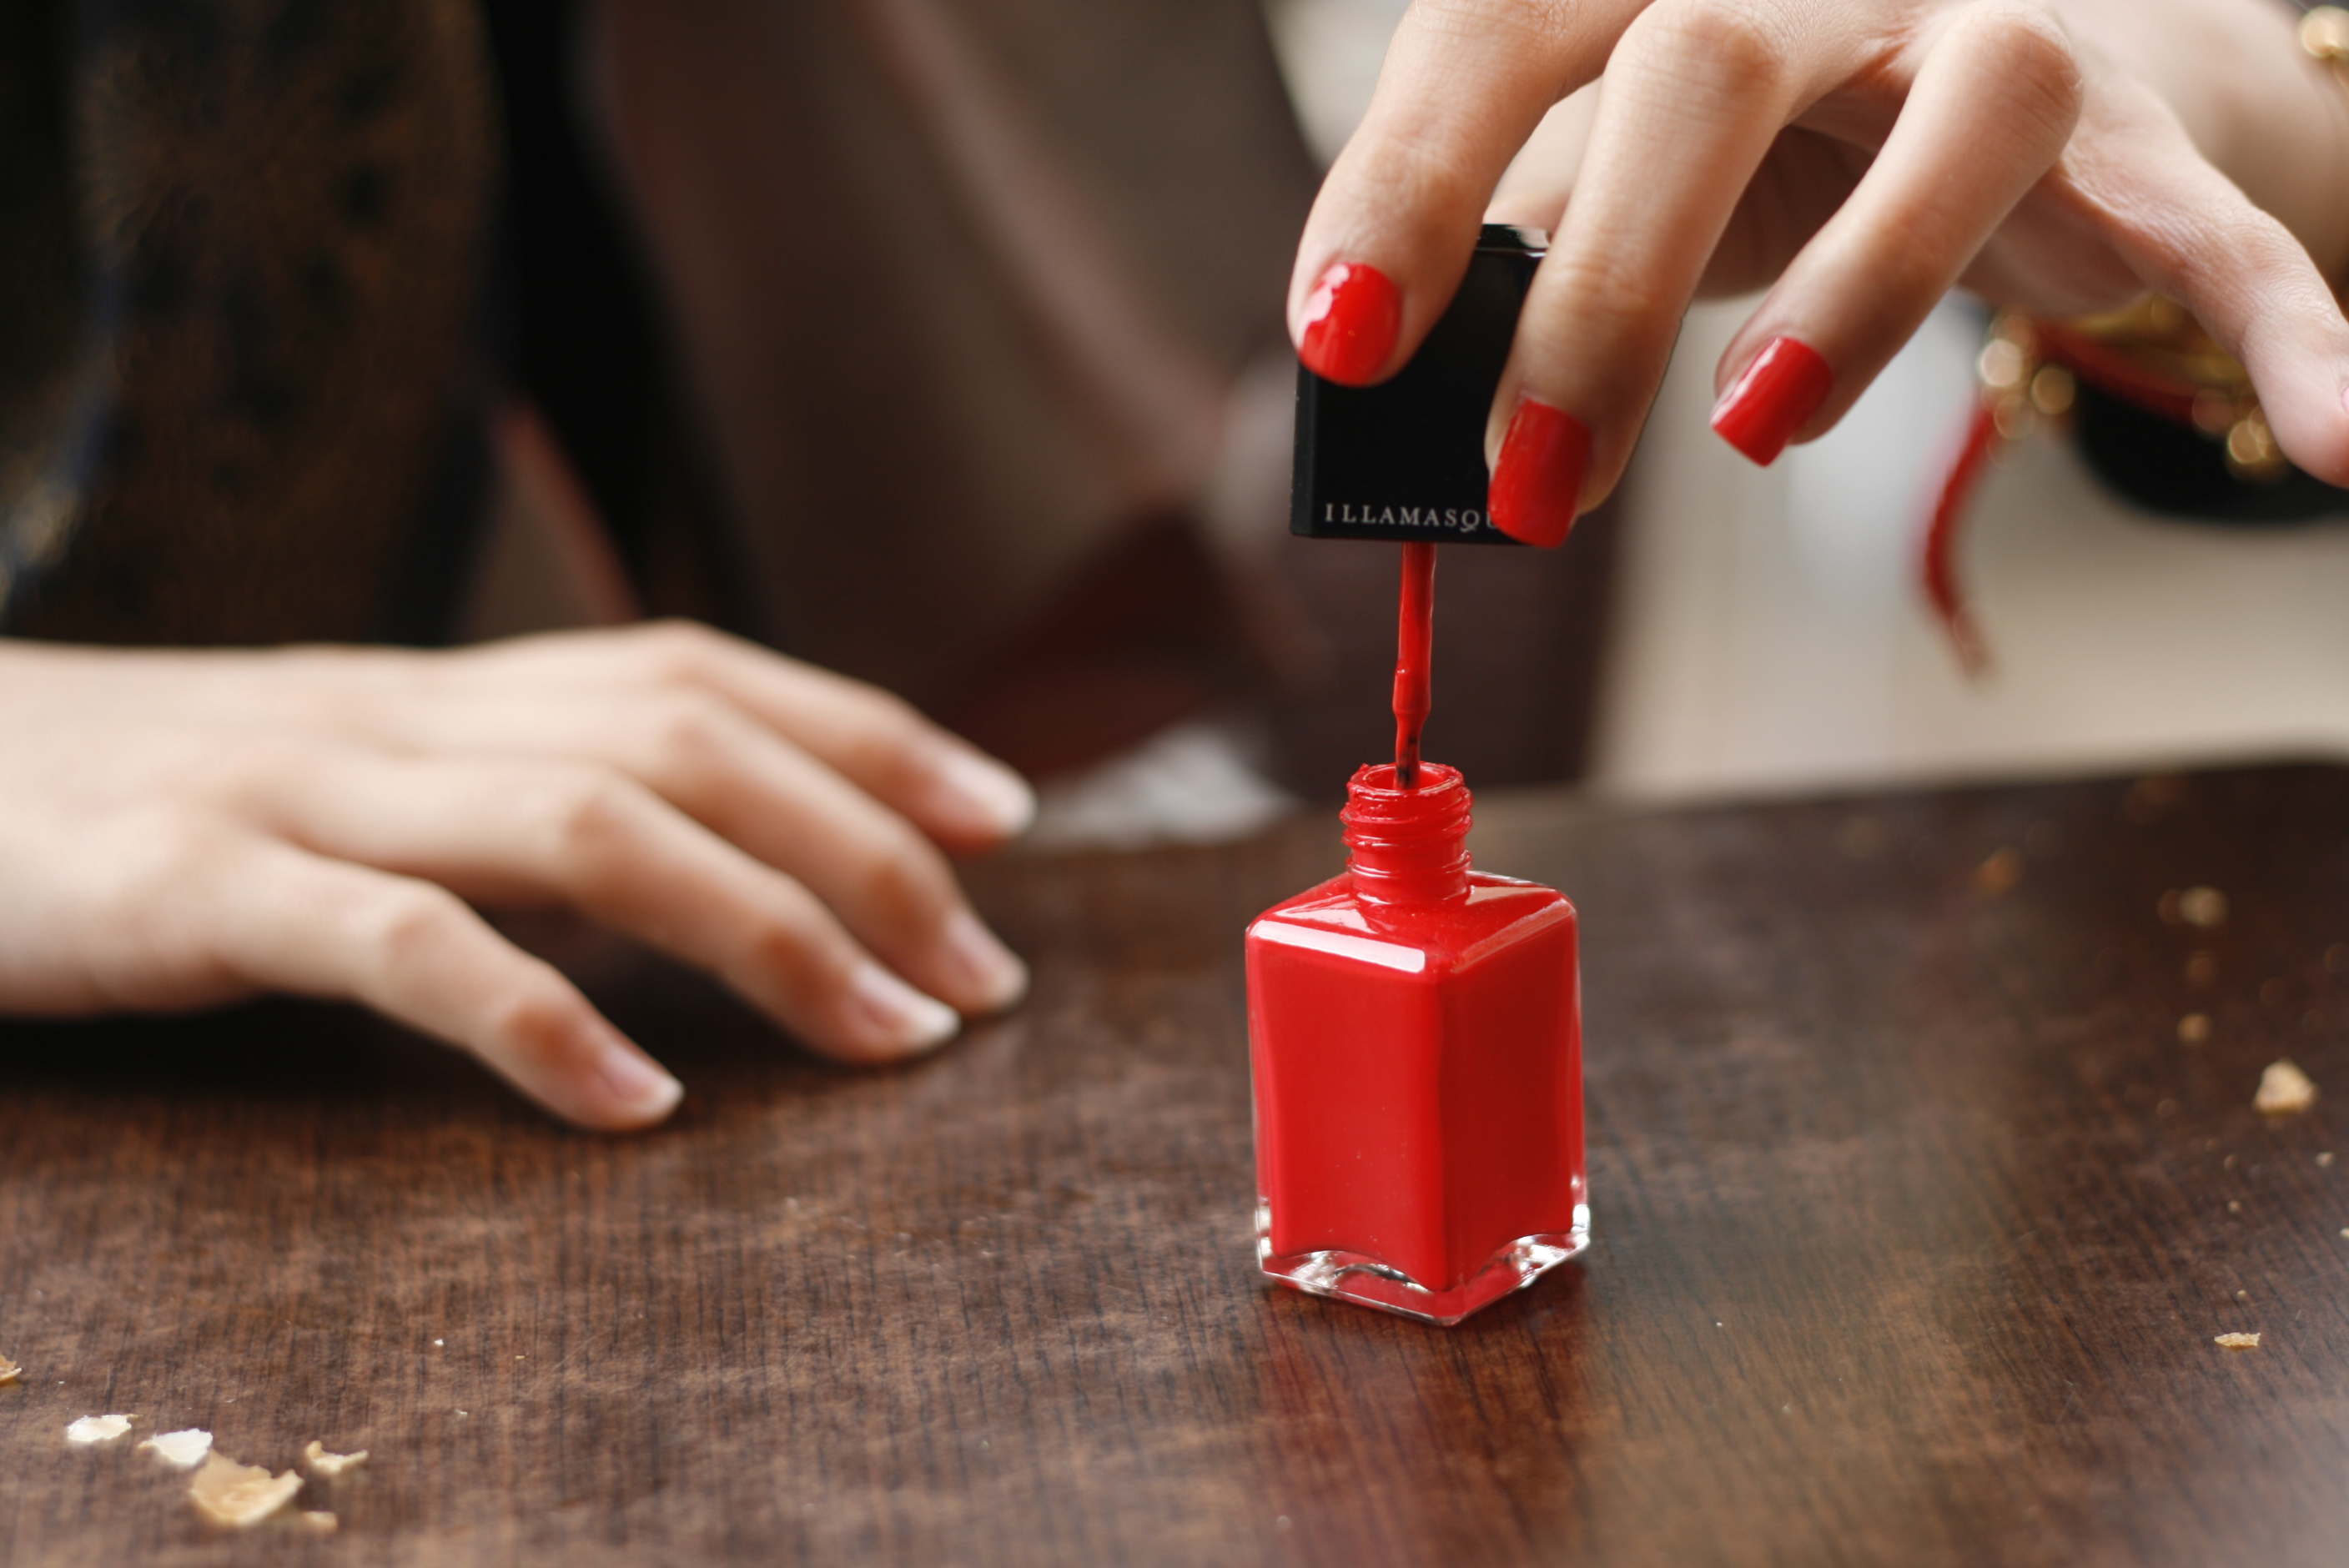 http://upload.wikimedia.org/wikipedia/commons/f/ff/Red_nail_polish_in_application.jpg